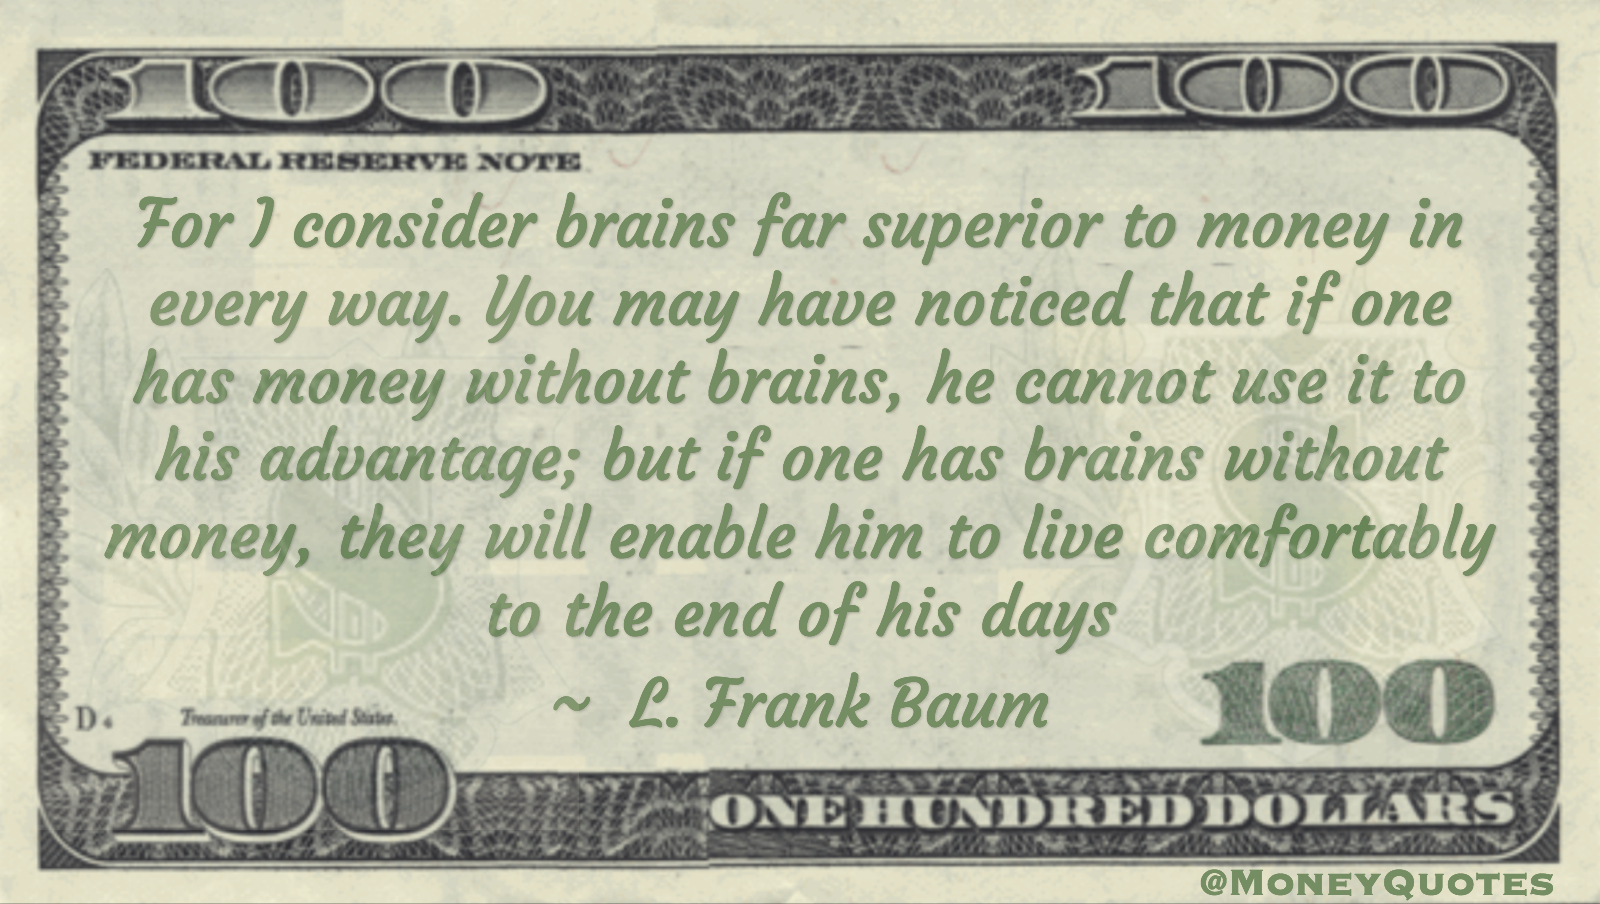 I consider brains far superior to money in every way, enable to live comfortably to the end of his days Quote